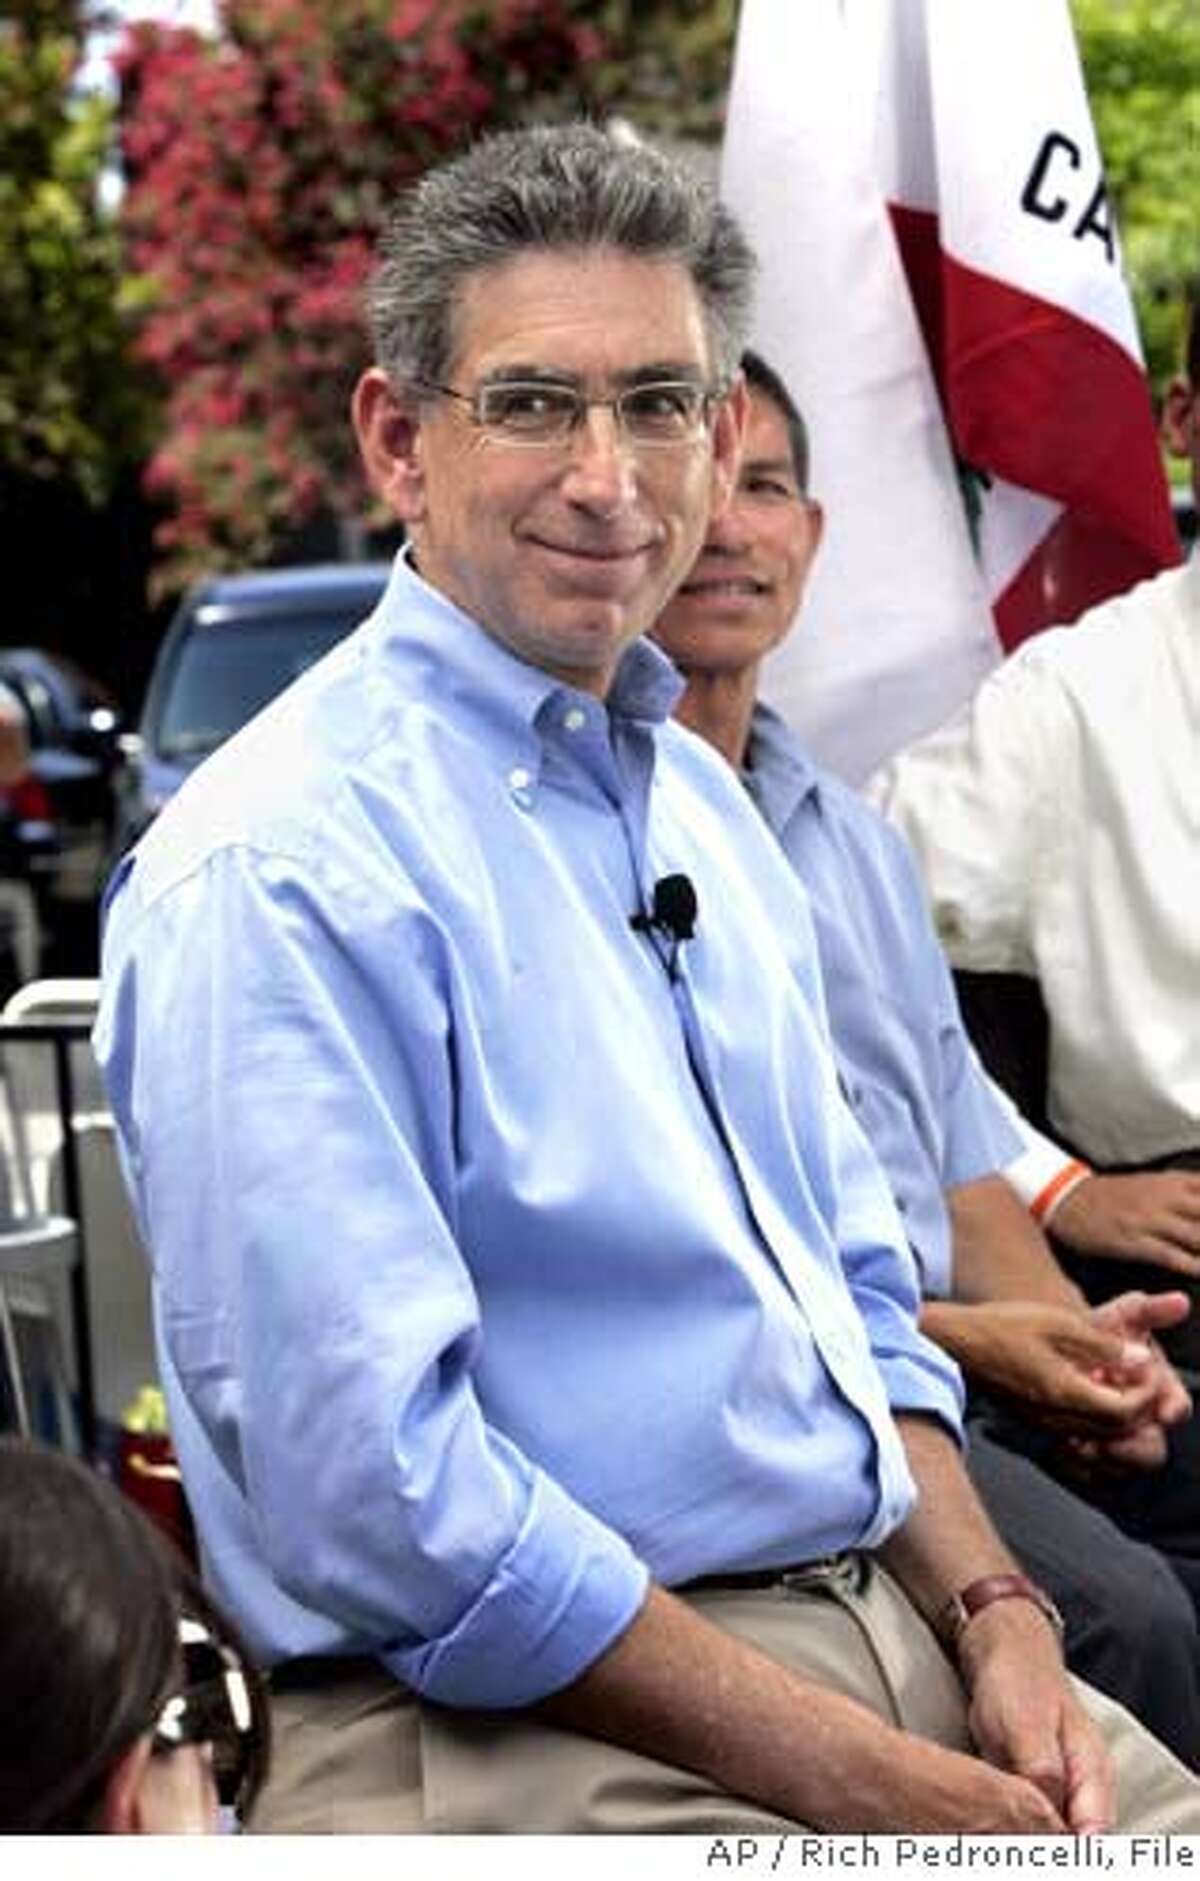 ** ADVANCE FOR SUNDAY SEPT. 3 ** FILE ** Democratic gubernatorial candidate Phil Angelides, smiles as he listens to a questions during an open forum campaign event in Sacramento, Calif., Monday, Aug. 21, 2006. A recent poll by the Public Policy Institute of California showed Angelides trailing his opponent, incumbent Republican Gov. Arnold Schwarzenegger by 13 points. In an effort to revamp his image he has dumped his staid suit and tie in favor of open collared shirts and adopted a more casual tone.(AP Photo/Rich Pedroncelli, file) ADVANCE FOR SUNDAY SEPT. 3 AUG. 21, 2006 FILE PHOTO